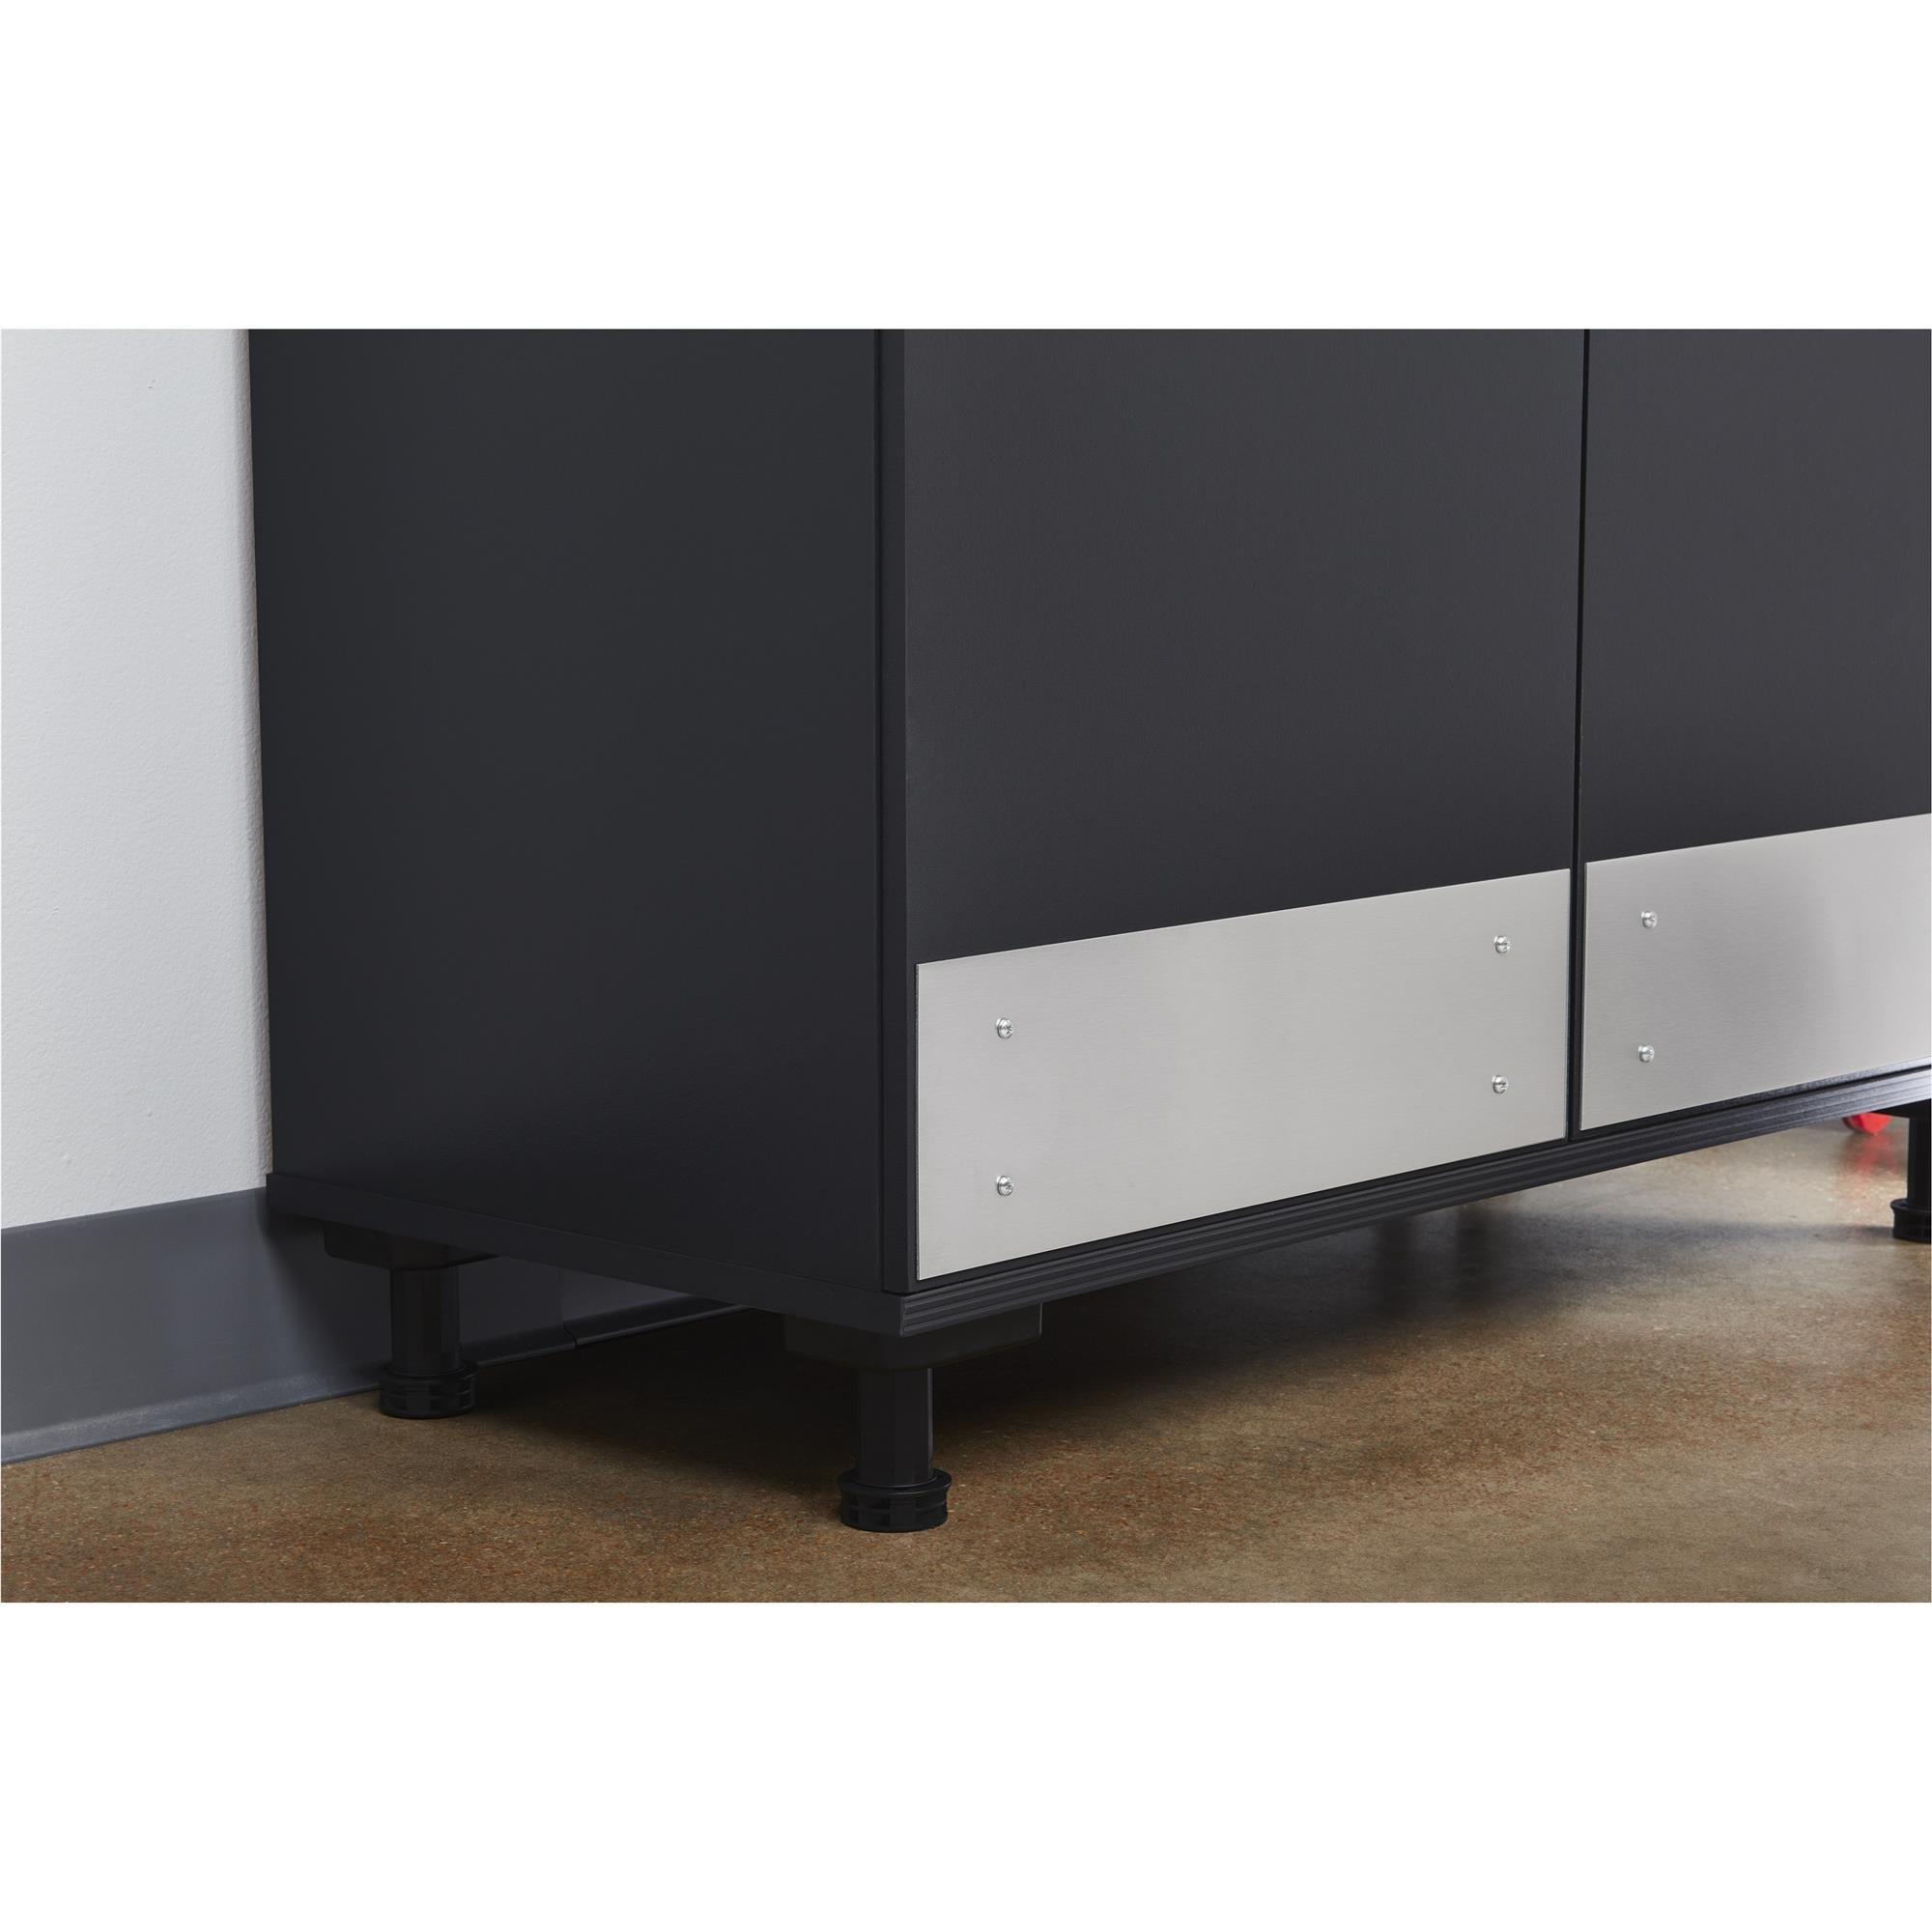 Ameriwood Home Boss -Base Cabinet 2 Door, Charcoal Gray by Ameriwood Home (Image #13)